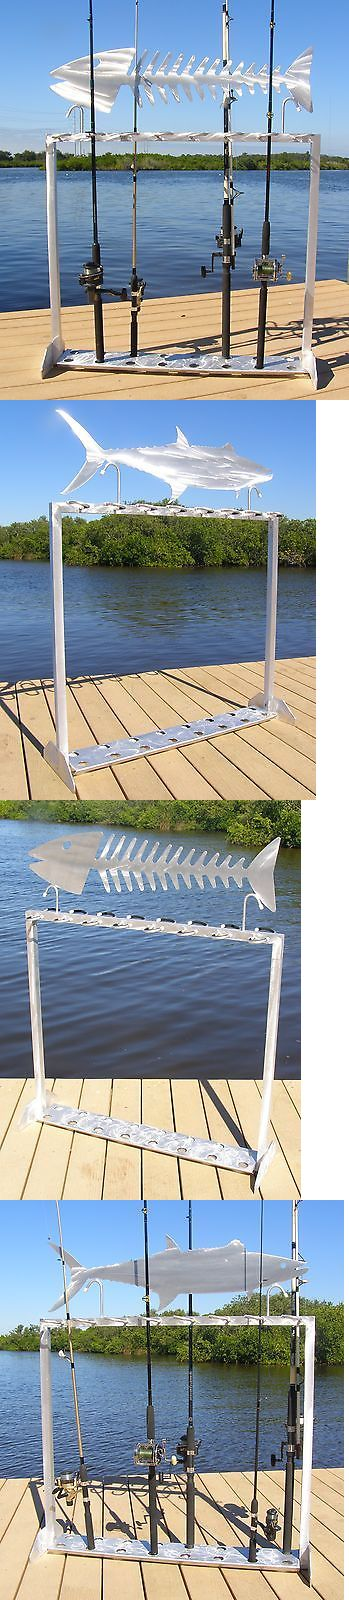 Rod Cases Tubes and Racks 81473: Fishing Rod Rack - Choose A Single Fish - Holds 16 Rods -> BUY IT NOW ONLY: $289 on eBay!